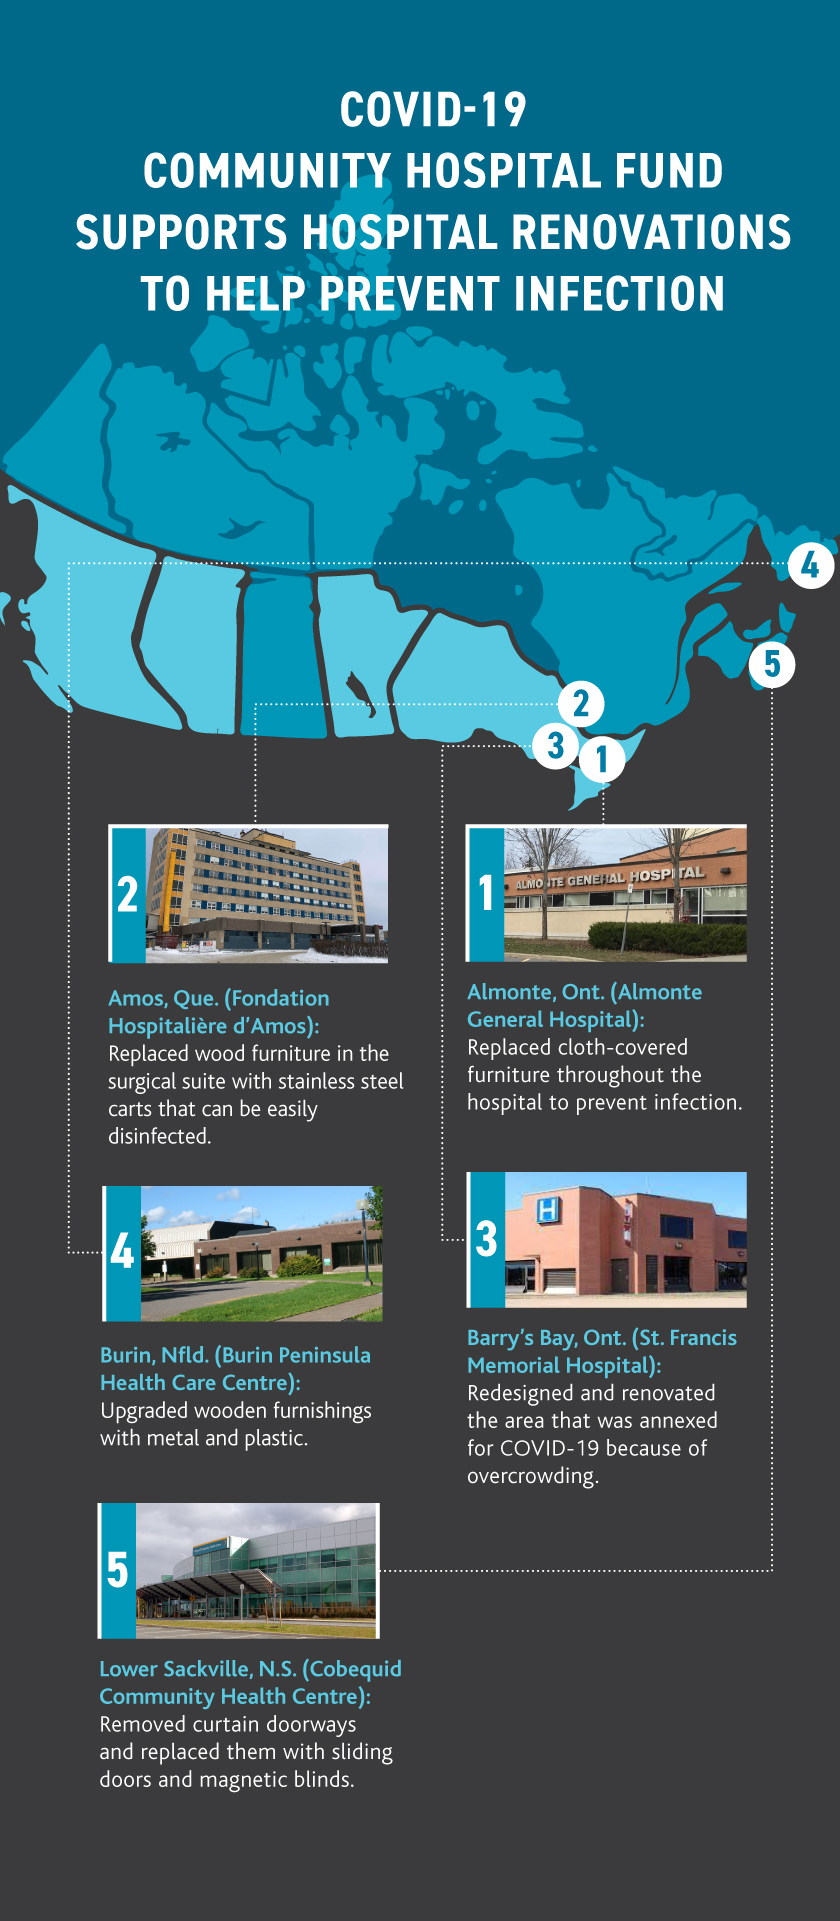 Infographic map showing five hospitals in Canada with renovation programs. 1. Almonte, Ont. (Almonte General Hospital): Replaced cloth-covered furniture throughout the hospital to prevent infection. 2. Amos, Que. (Fondation Hospitalière d'Amos): Replaced wood furniture in the surgical suite with stainless steel carts that can be easily disinfected. 3. Barry's Bay, Ont. (St. Francis Memorial Hospital): Redesigned and renovated the area that was annexed for COVID-19 because of overcrowding. 4. Burin, Nfld. (Burin Peninsula Health Care Centre): Upgraded wooden furnishings with metal and plastic. 5. Lower Sackville, N.S. (Cobequid Community Health Centre): Removed curtain doorways and replaced them with sliding doors and magnetic blinds.